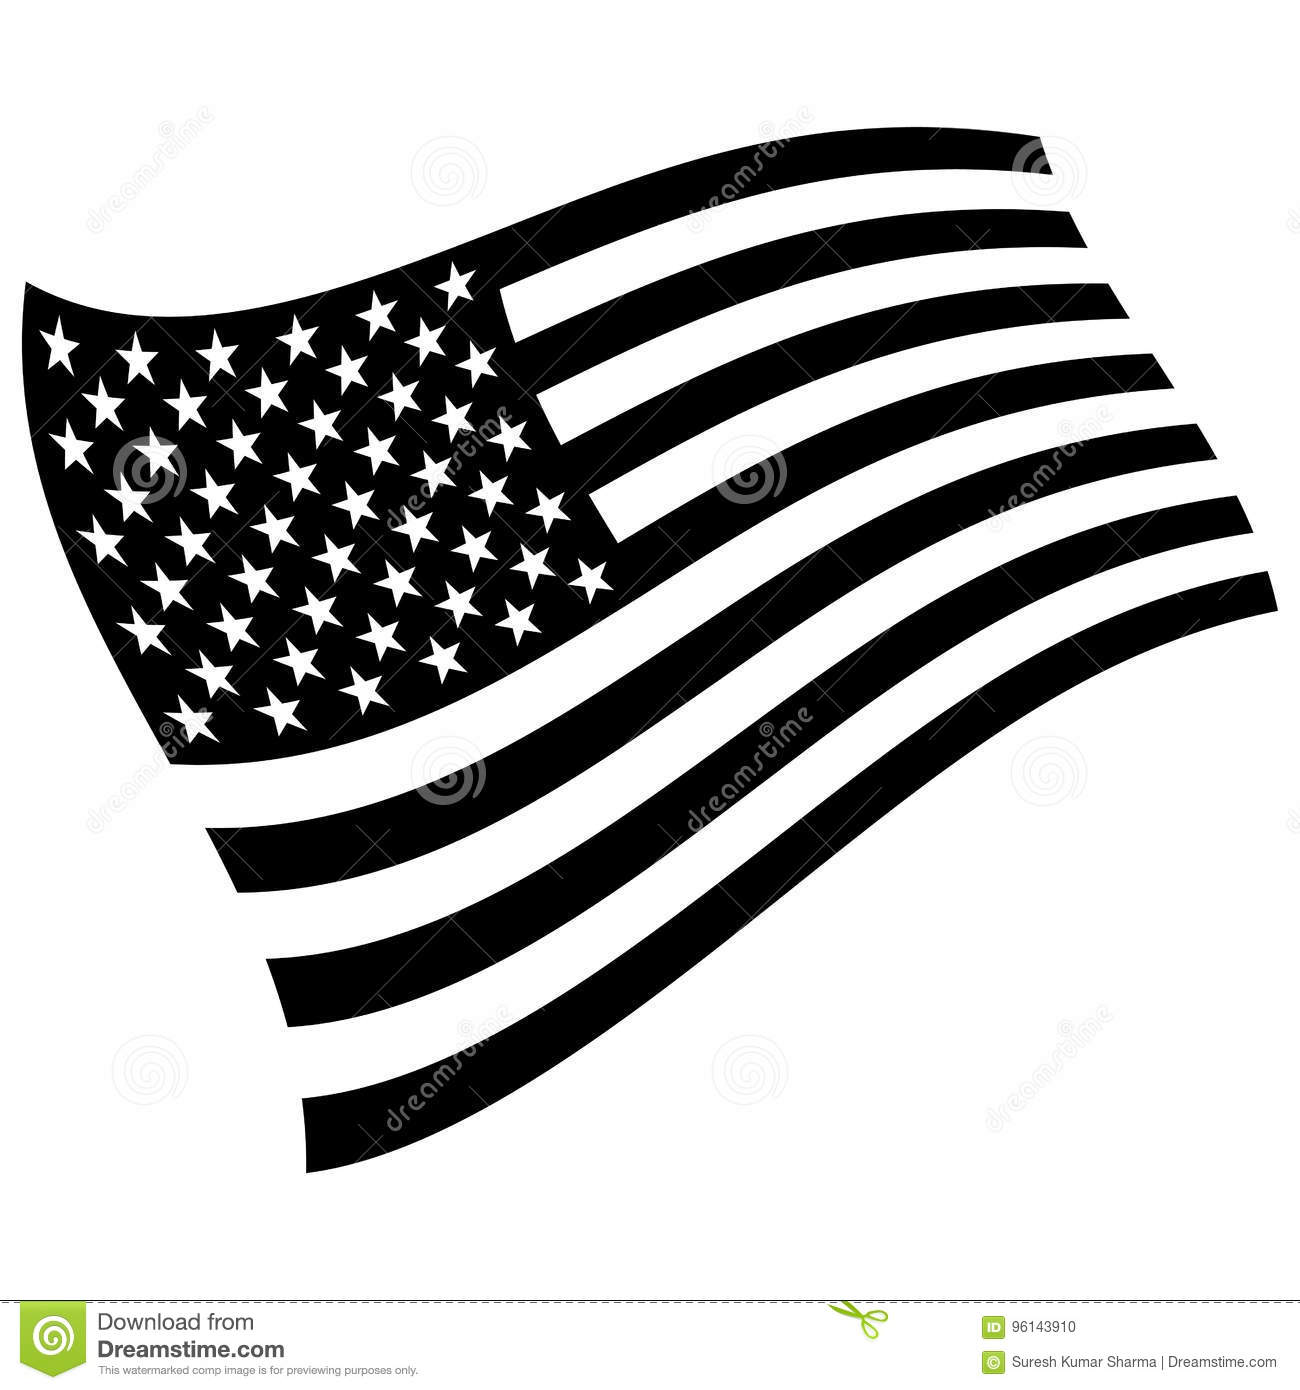 Black And White American Flag Clipart | Free Images at Clker.com - vector clip  art online, royalty free & public domain